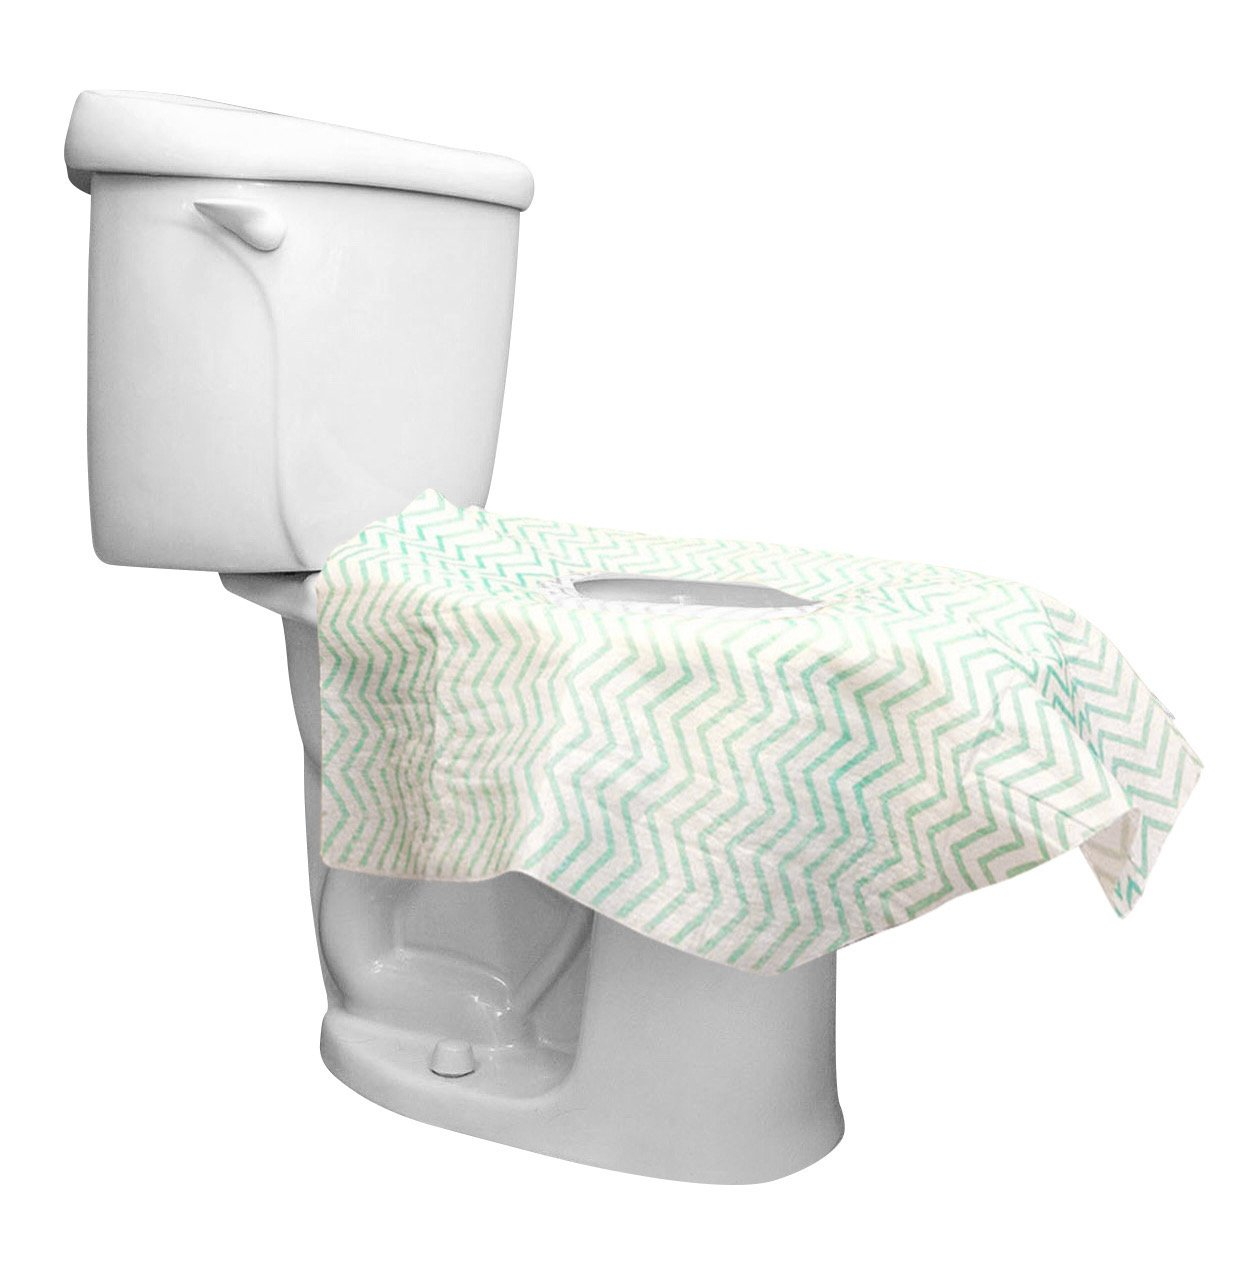 Full Cover Disposable Toilet Seat Covers,Individually Wrapped Travel Toilet Potty Seat Covers Public Restrooms Portable Potty Shields for Pregnant Animal Kids and Toddler Potty Training